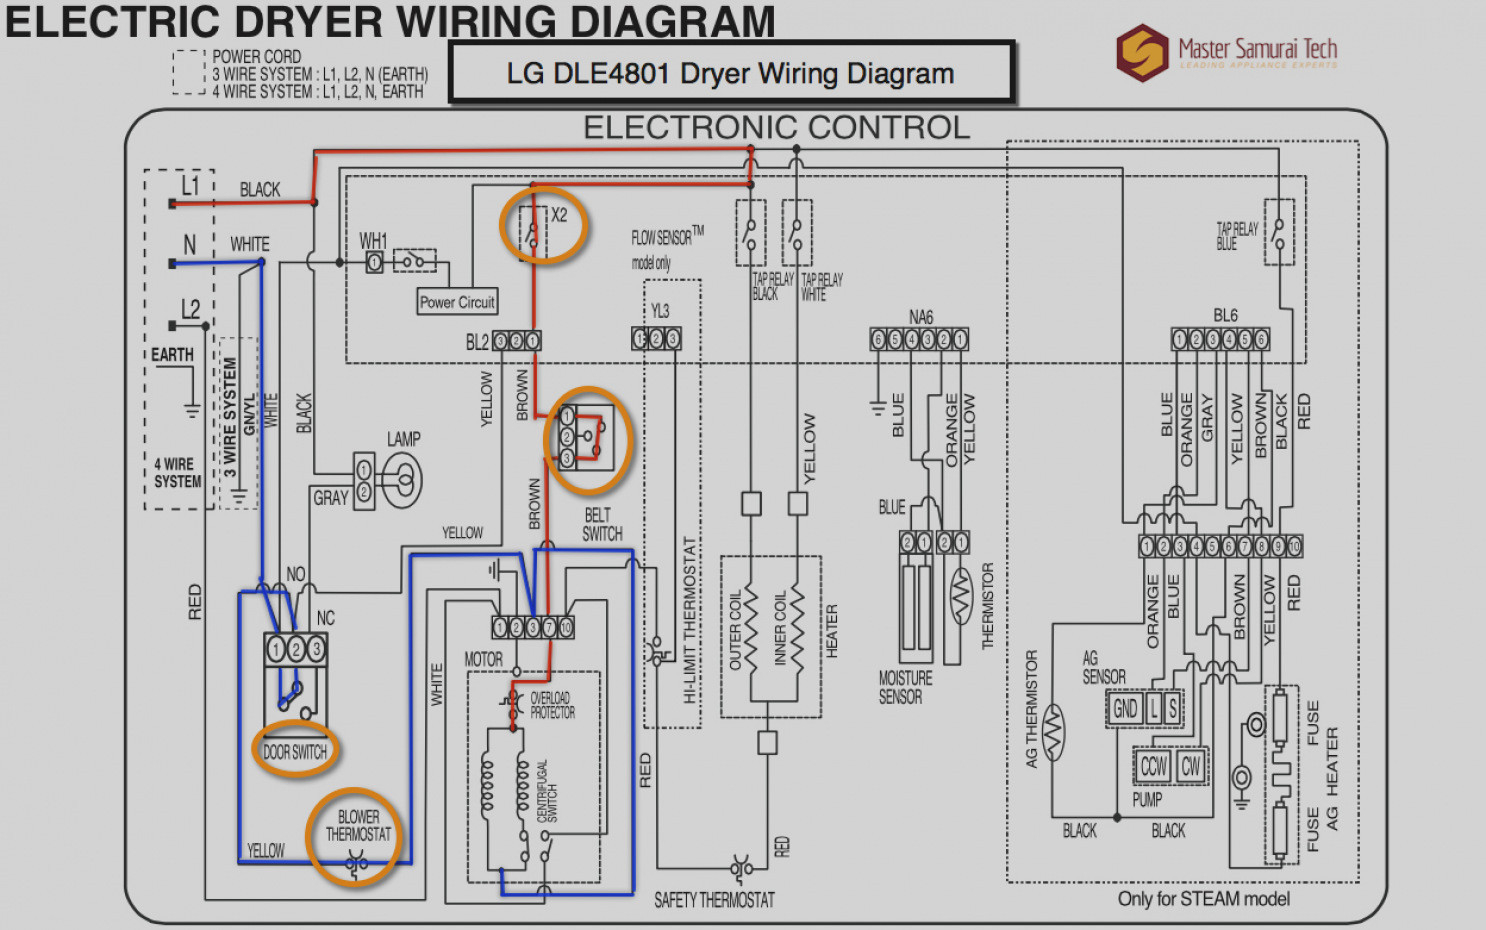 Whirlpool Gas Dryer Wiring Diagram Collection | Wiring Diagram Sample